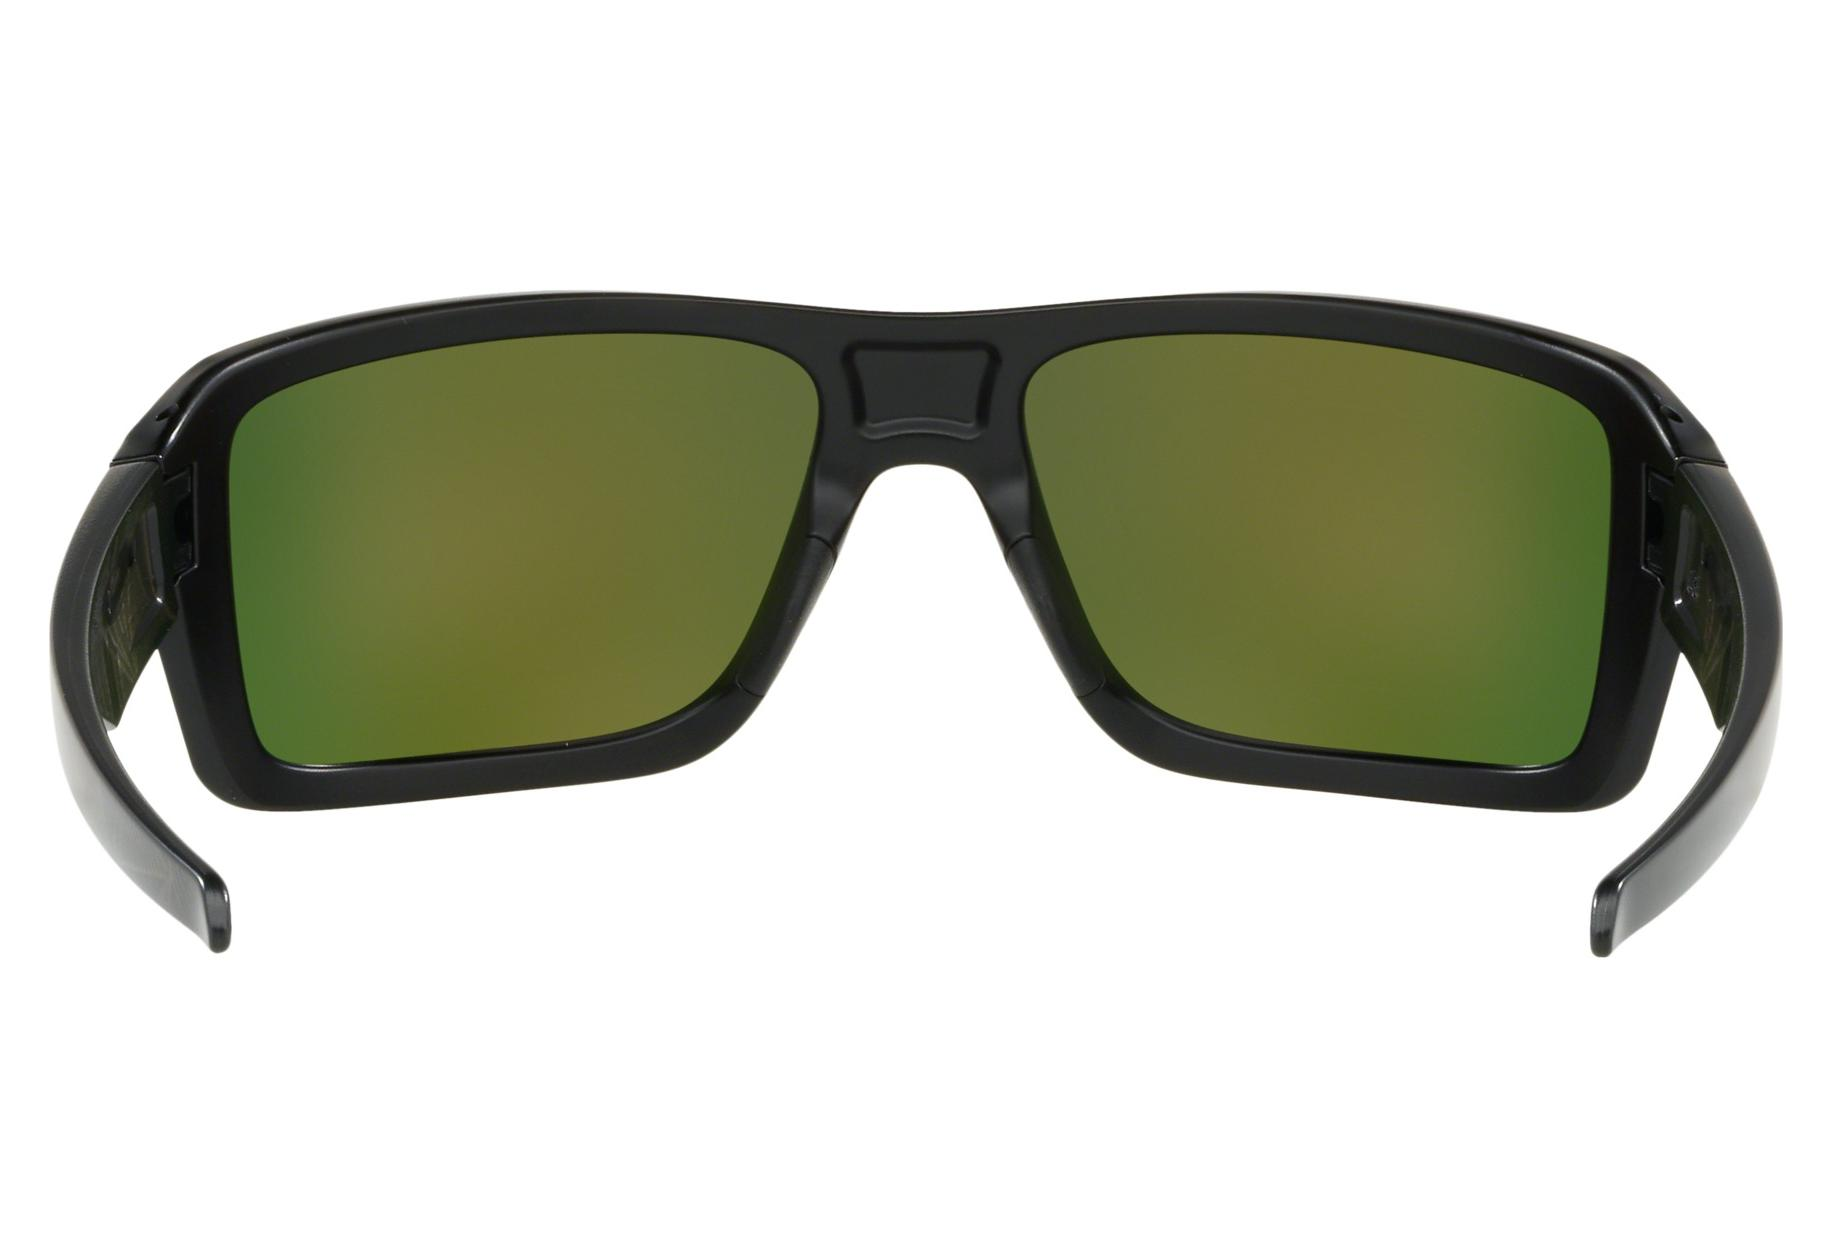 195b5ae8ac4 Oakley Sunglasses Double Edge Prizmatic Collection   Matte Black Prizmatic    Prizm Ruby Polarized   Ref